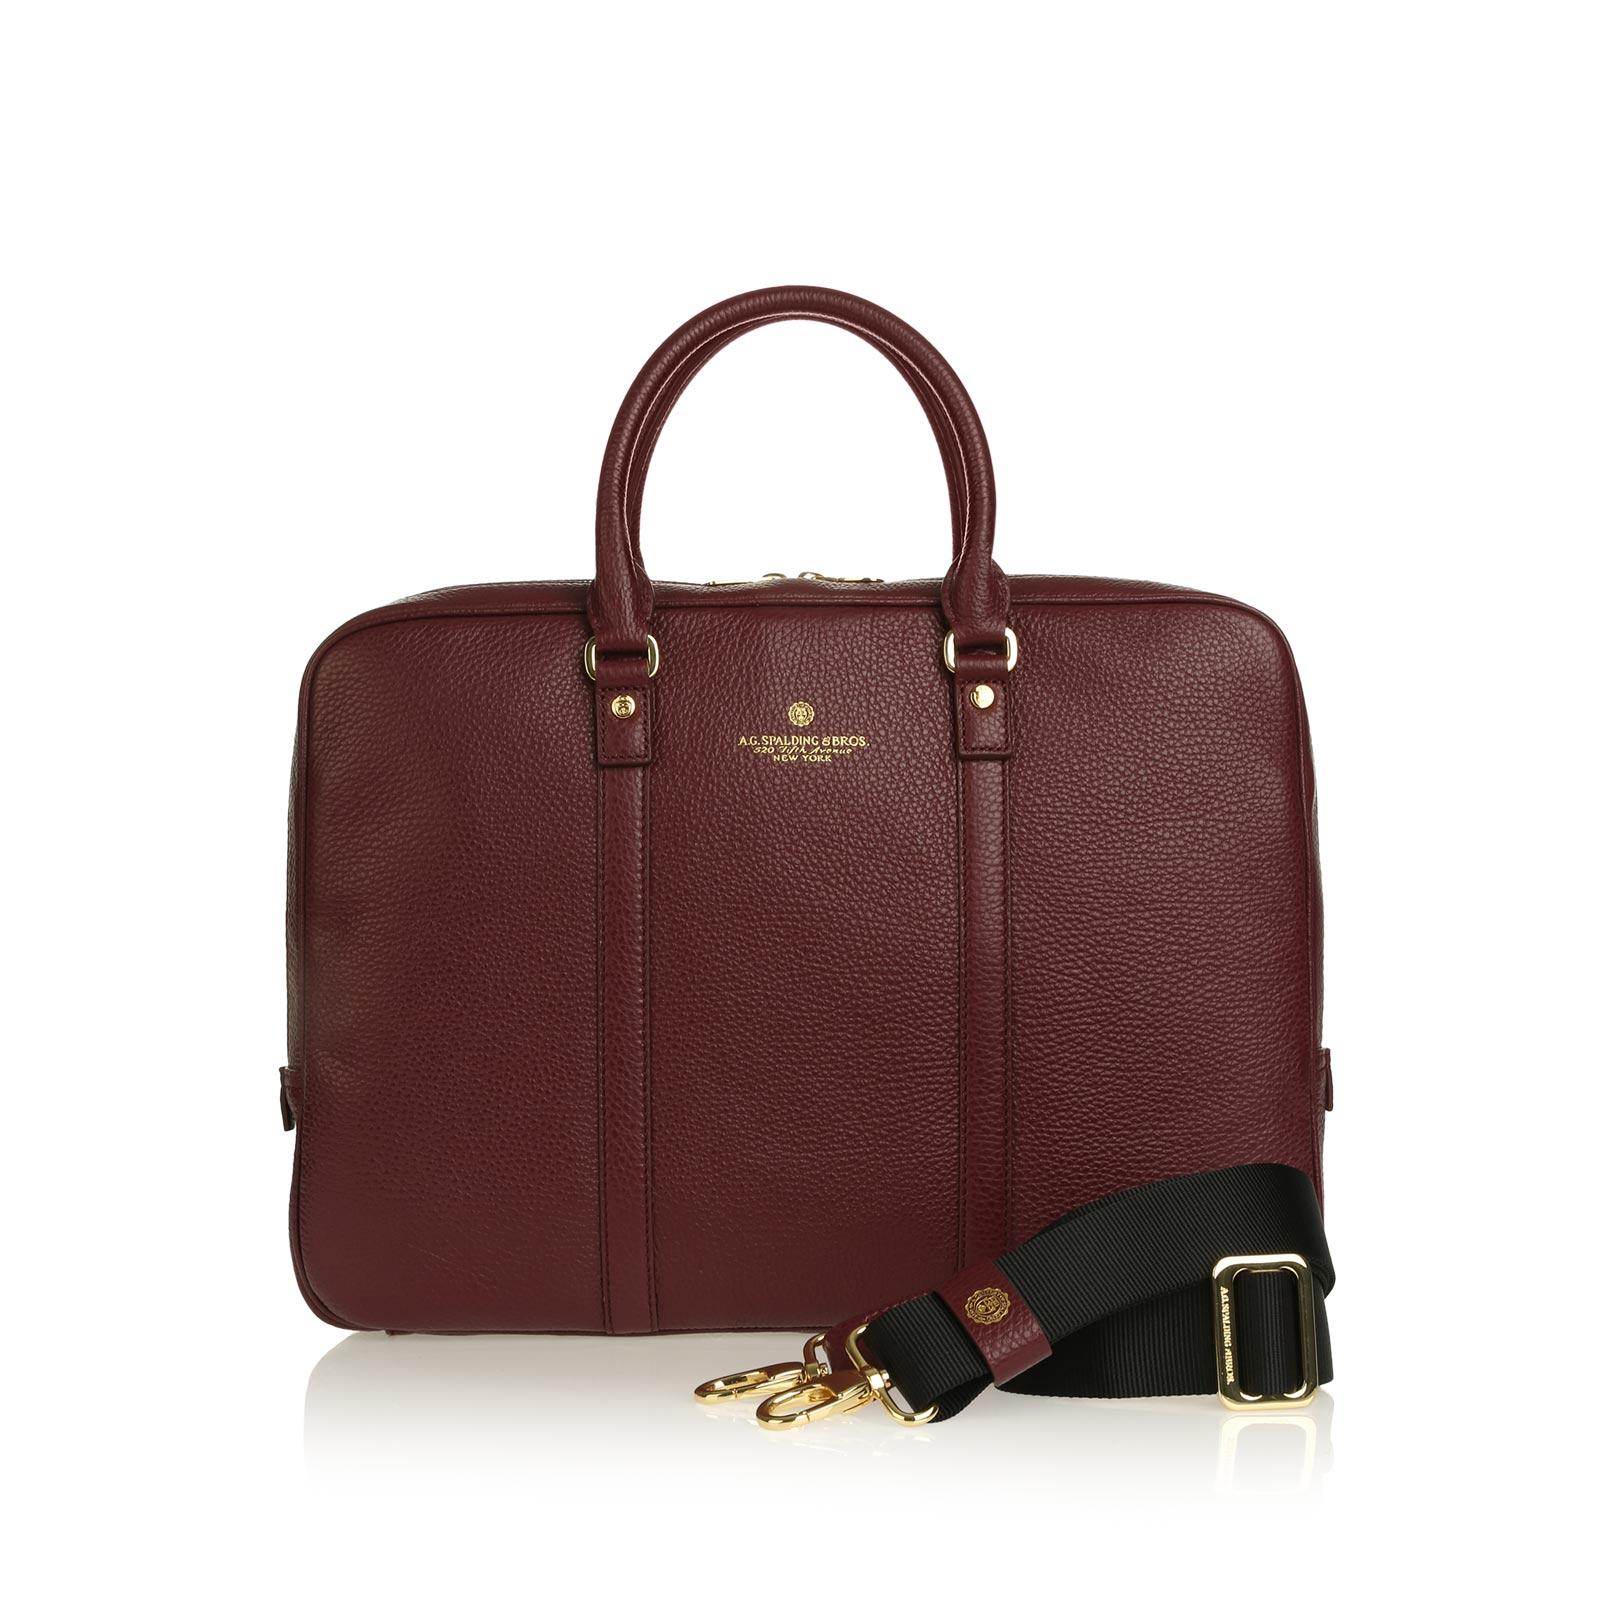 Tiffany Cartella Manici Corti BORDEAUX